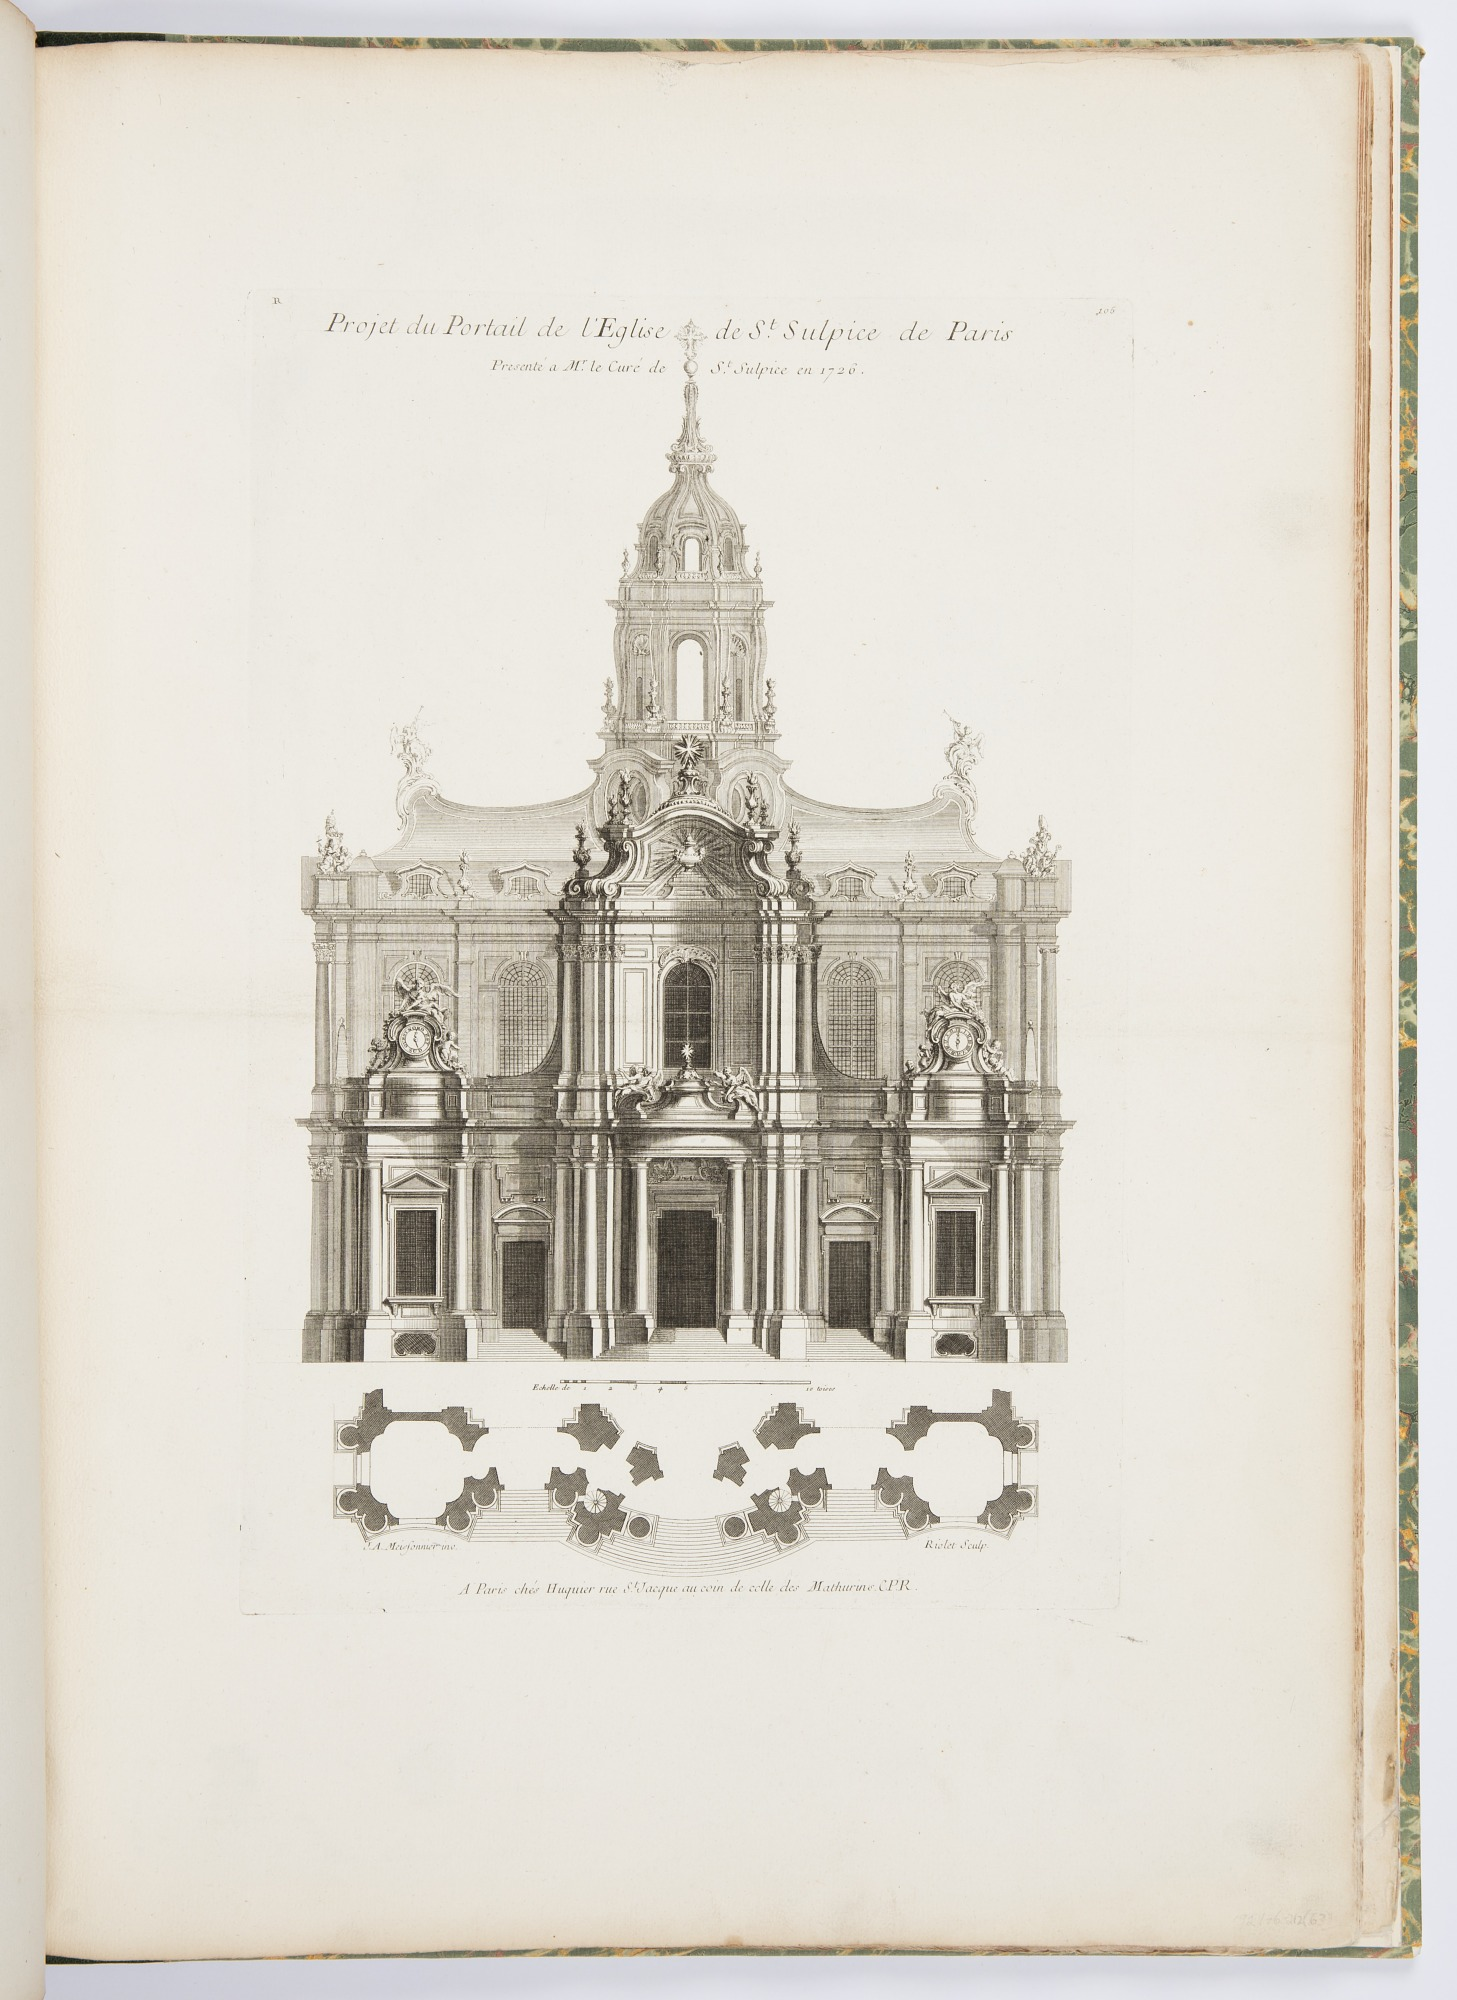 Projet du Portail de l'Eglise de St. Sulpice de Paris (Design for the Portal of the Church of St. Sulpice of Paris), plate 105, in Oeuvres de Juste-Aurèle Meissonnier (Works by Juste-Aurèle Meissonnier)